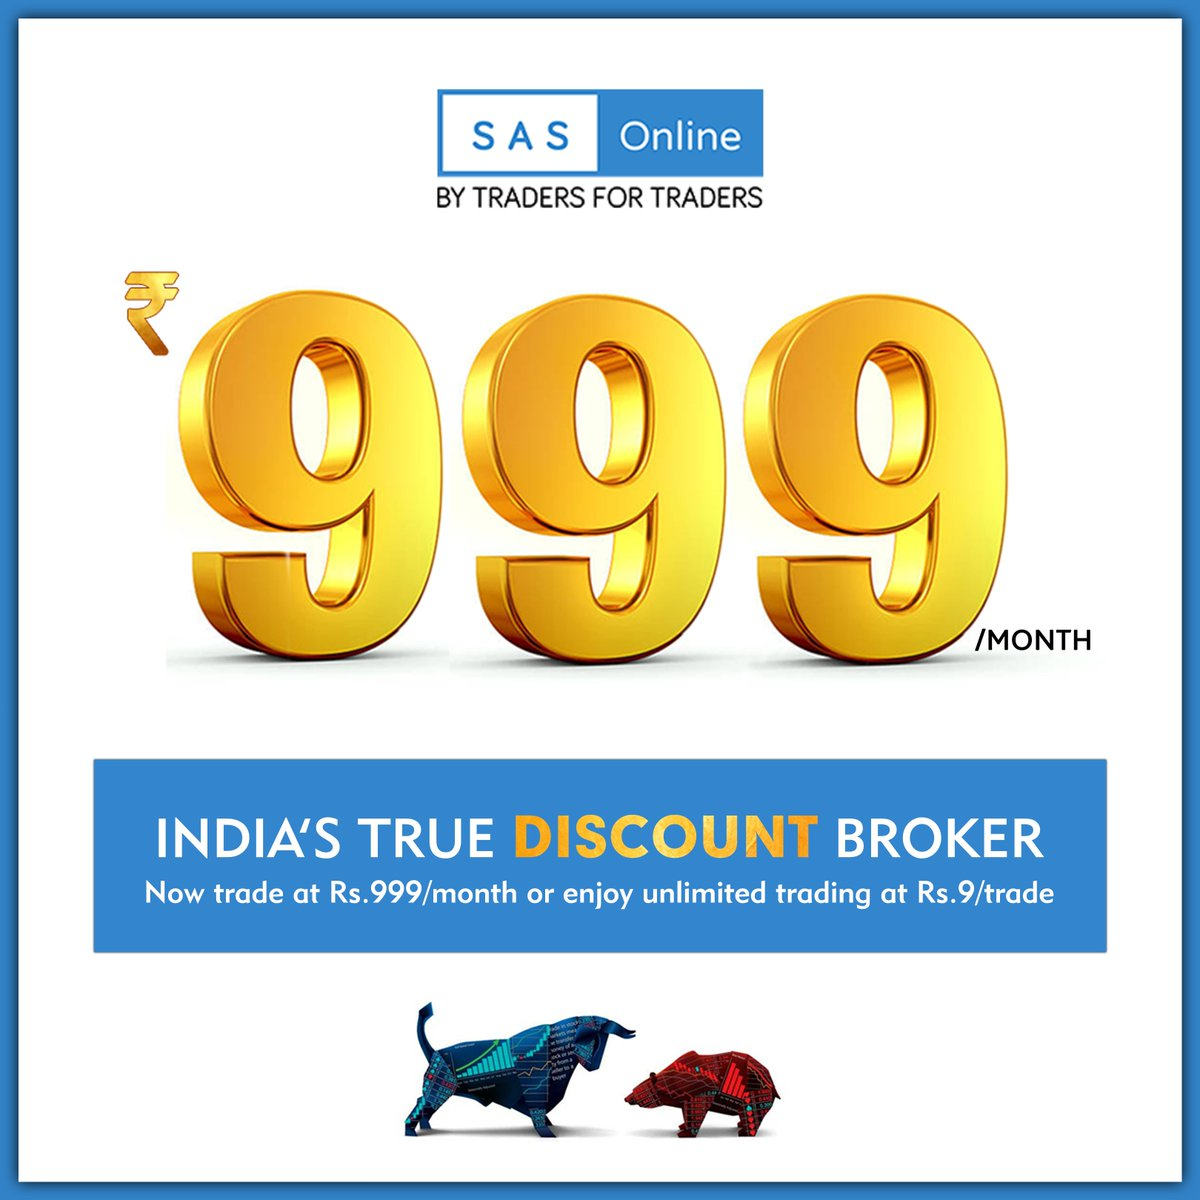 test Twitter Media - #UnlimitedTradeFor999 ✅ Yes You Heard That Correct , We Offer A Unique Trading Experience For Traders By Letting Them TRADE #Unlimited At Rs.999/Month   #DiscountBroker #BSE #NSE #Stocks #Trader #Brokerage #ShareMarket #StockMarket #Trading #MCX #OpenADematAccount #MutualFunds https://t.co/j1f9GJdypn